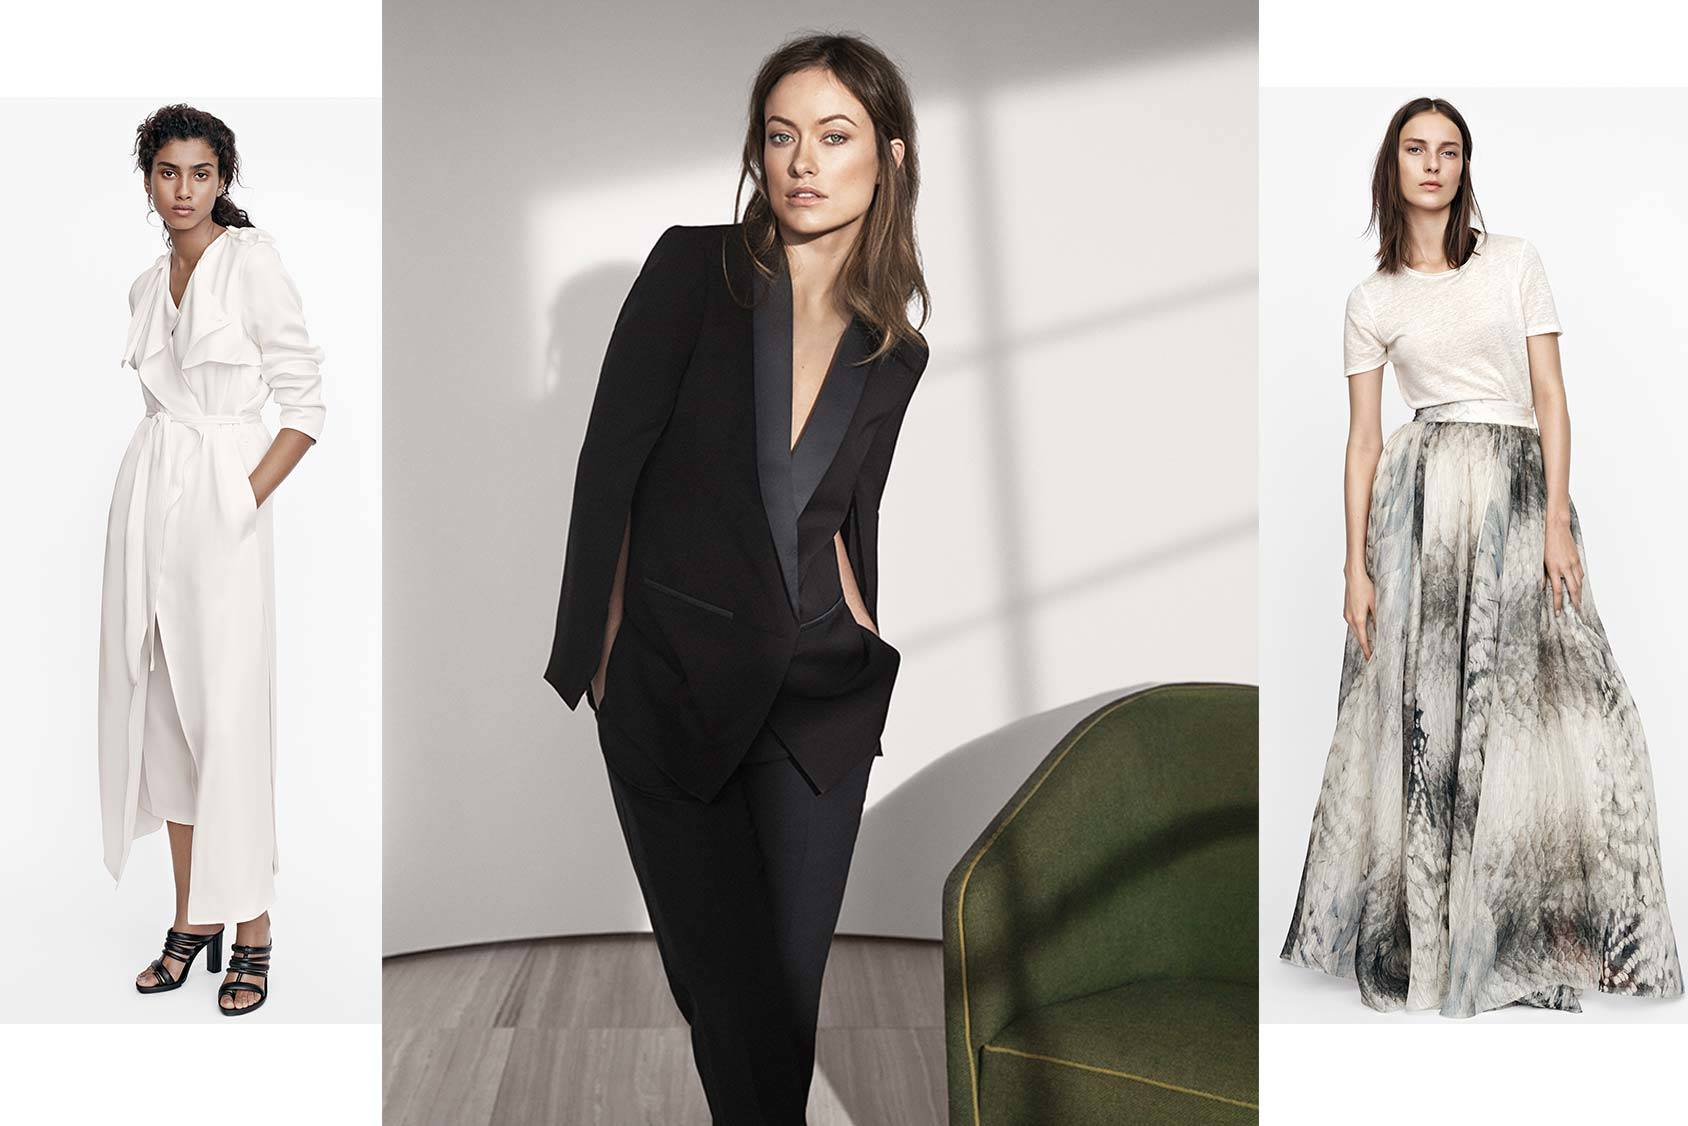 The Conscious Exclusive Collection will be sold in selected stores and online from 16 April. Spokesperson Olivia Wilde (center) models the tuxedo.